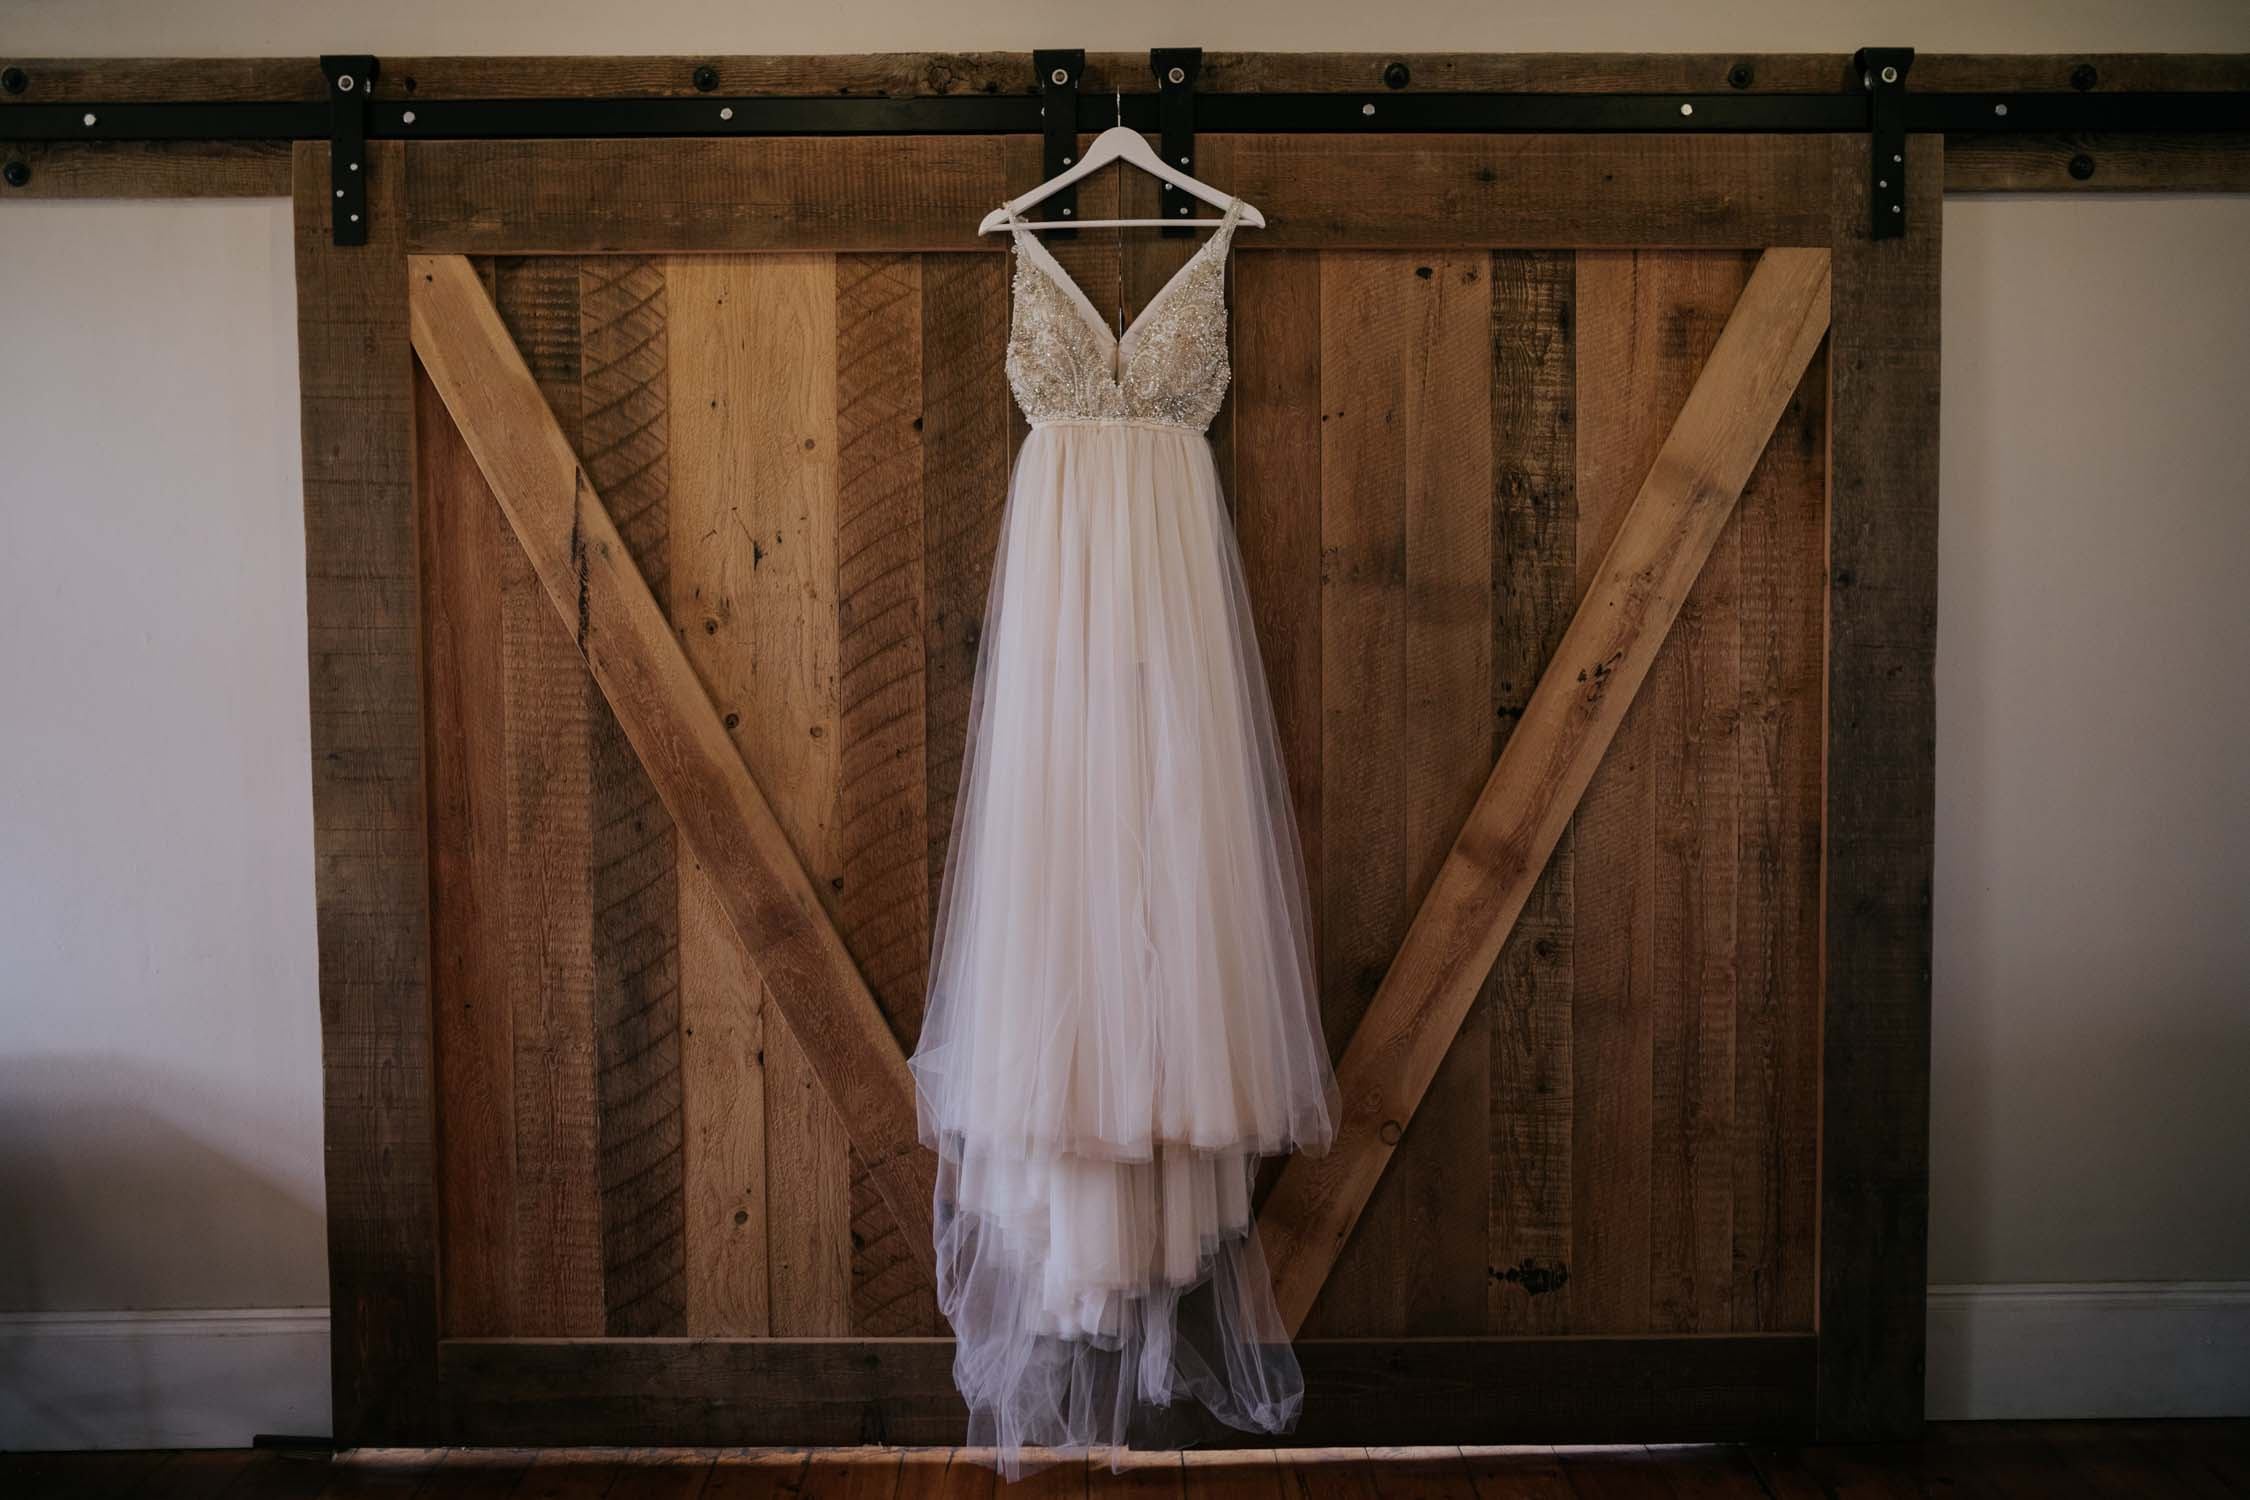 Wedding dress with beads and lace hanging on wooden farm doot